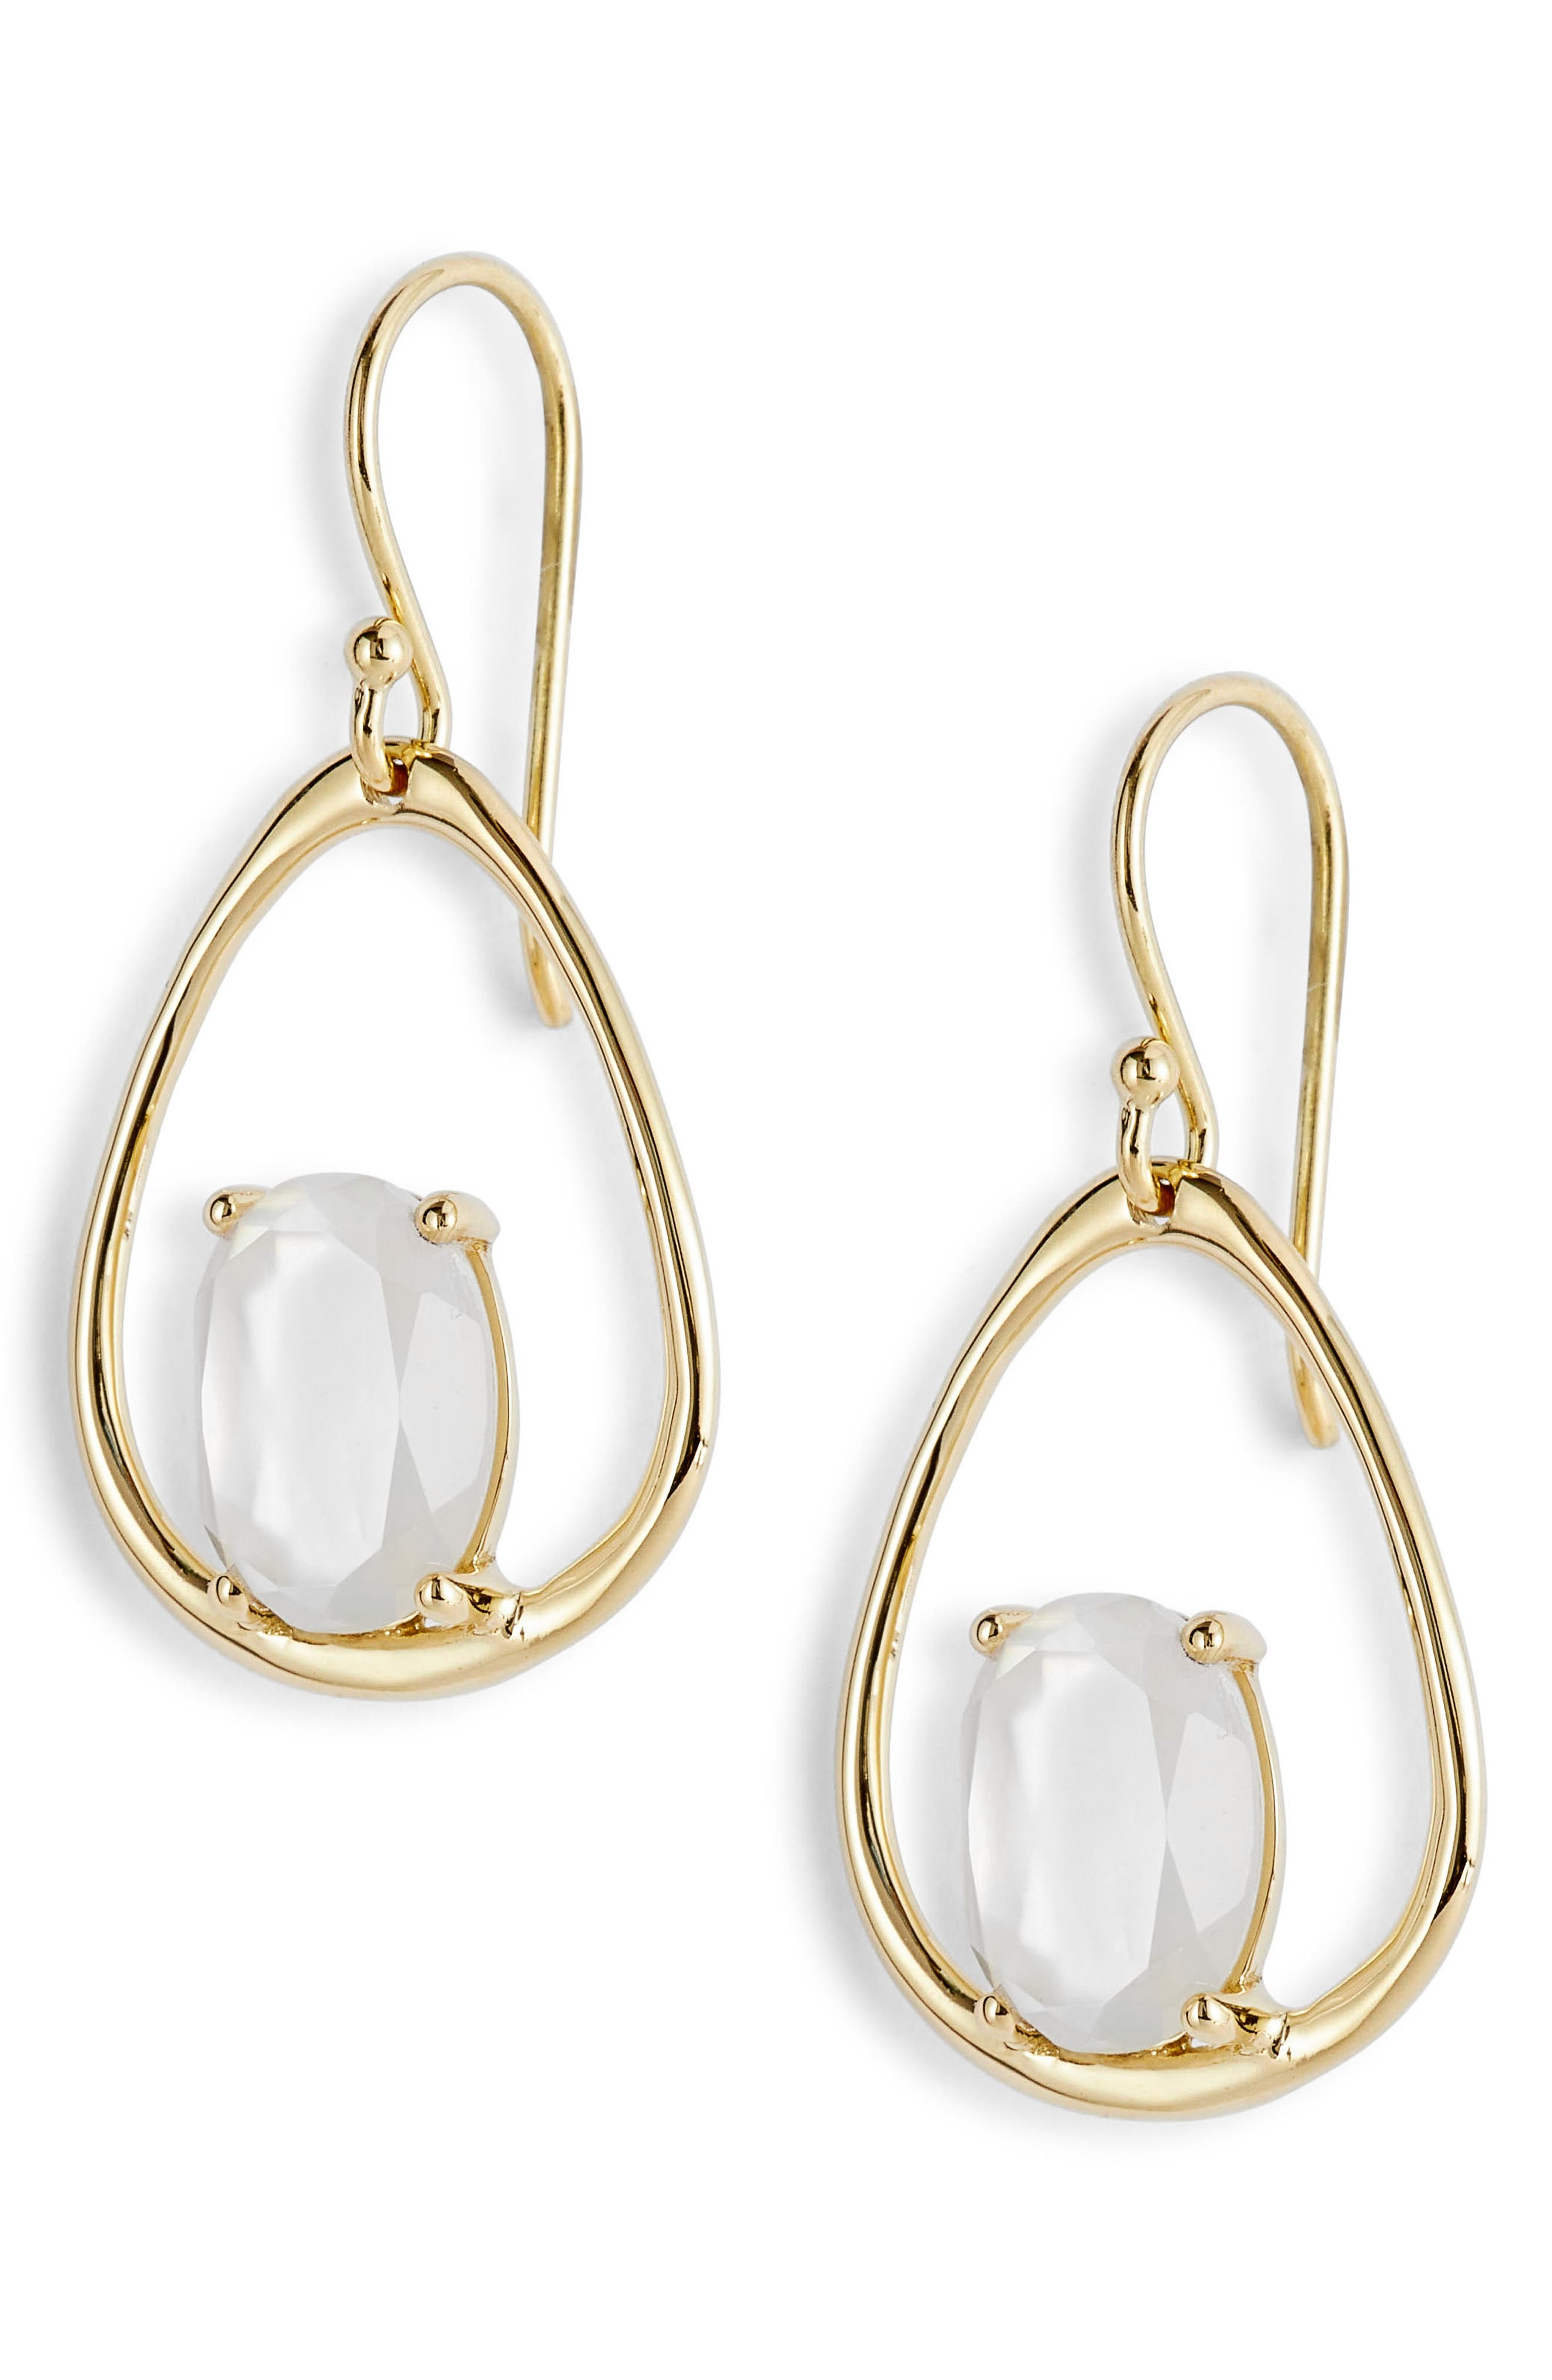 Rock Candy 18K Gold Small Drop Earrings,                         Main,                         color, GOLD/ MOTHER OF PEARL